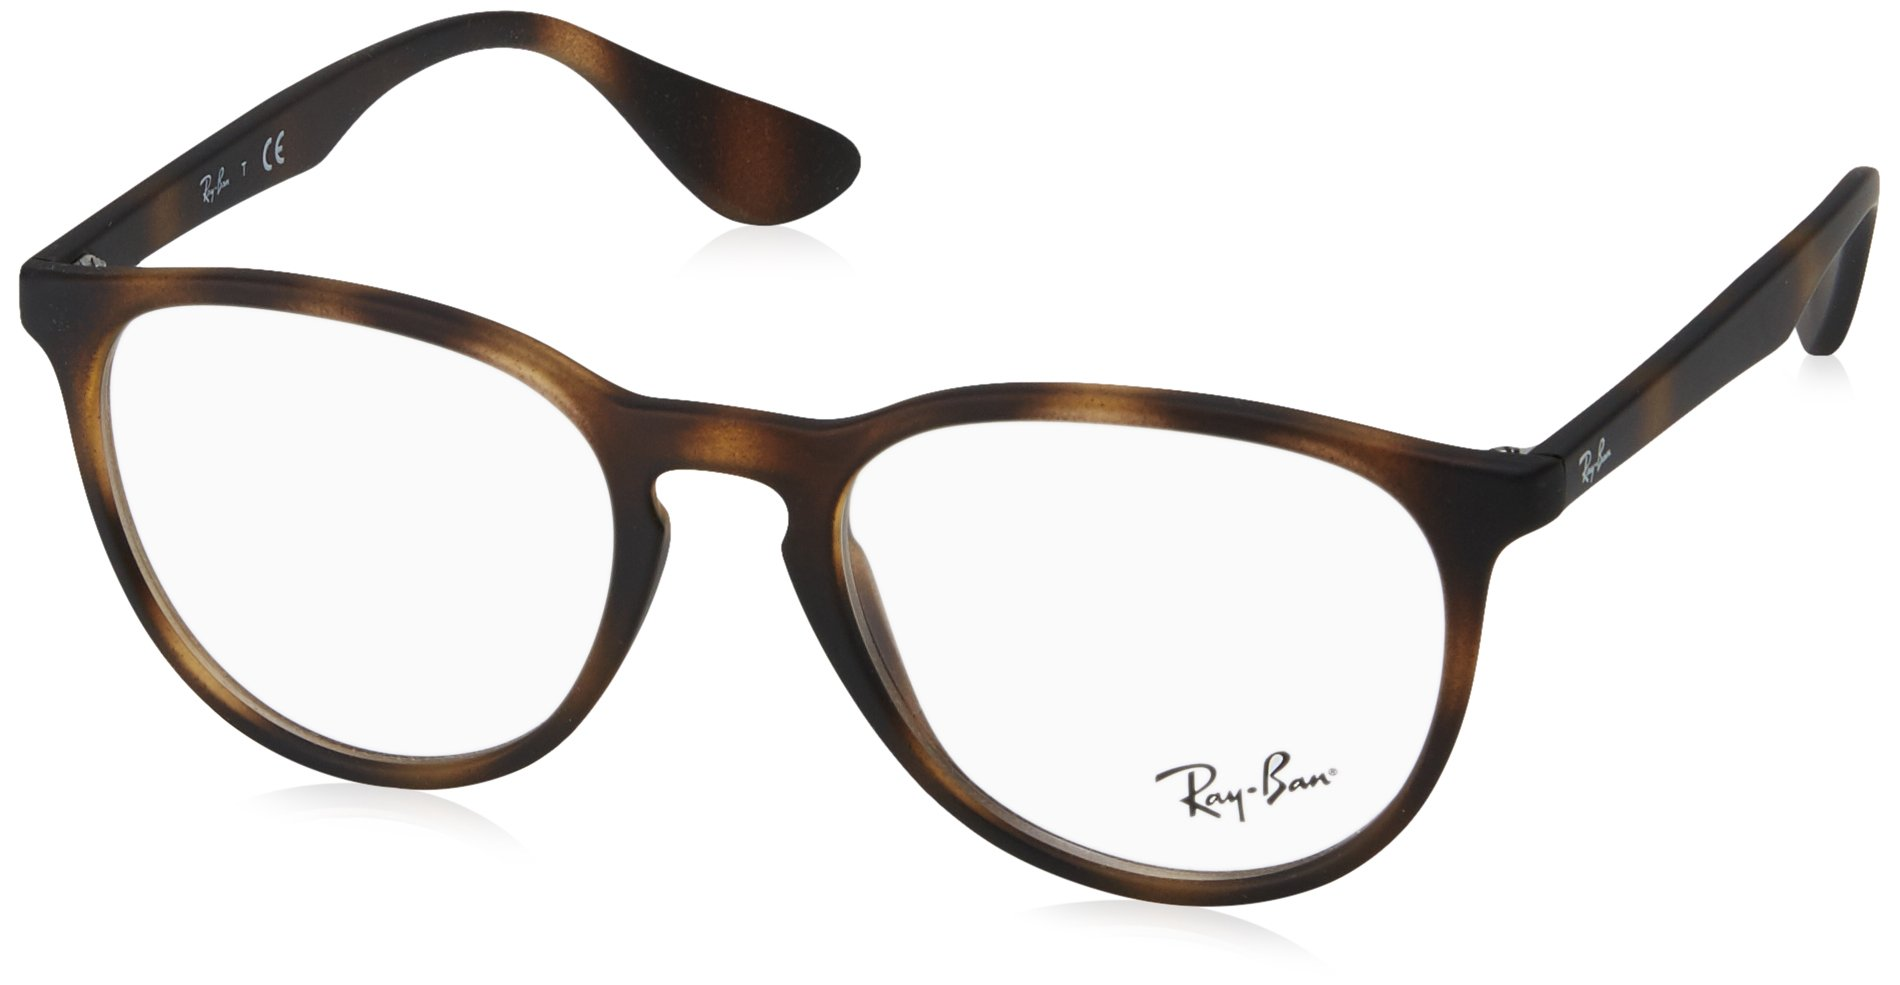 900d8de8d6 Ray Ban Nerd Brille Damen - Restaurant and Palinka Bar